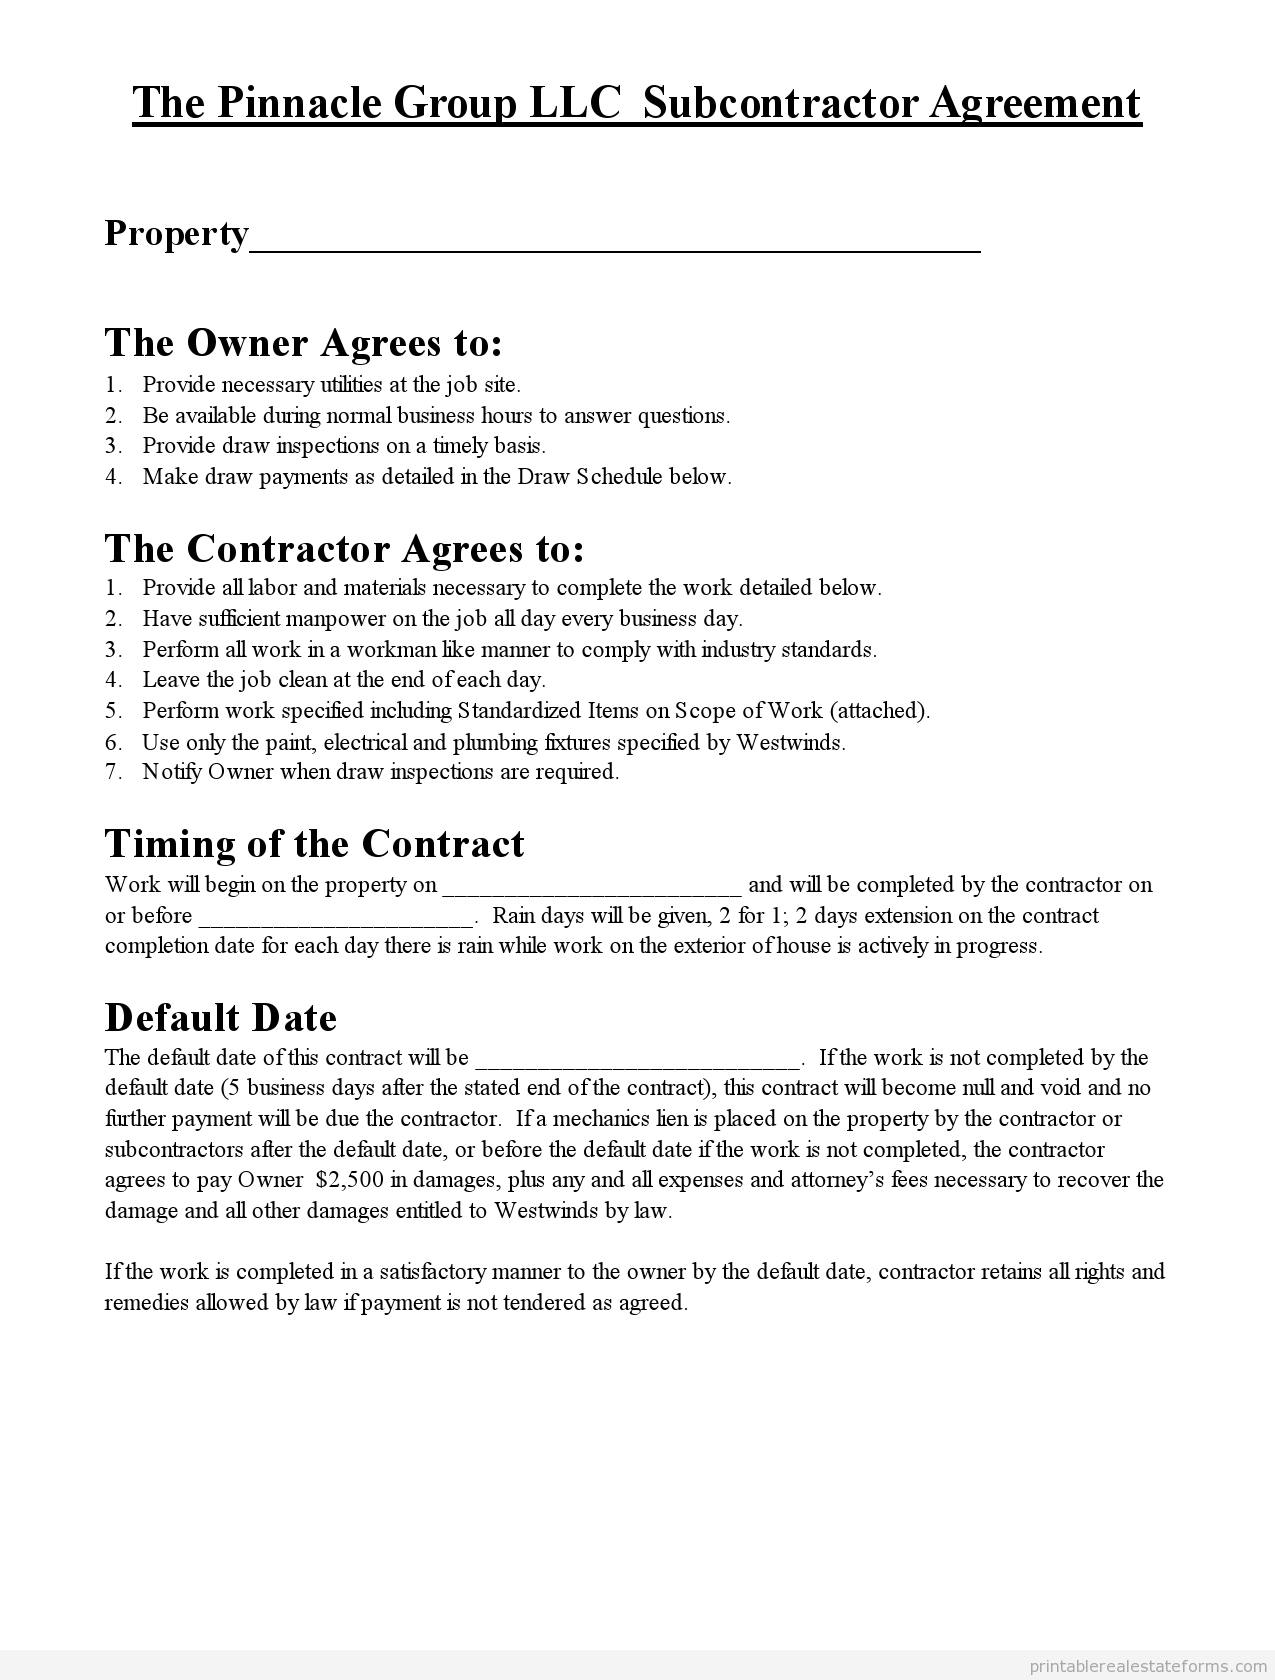 Free Printable Subcontractor Agreement Form | Printable Real Estate - Free Printable Subcontractor Agreement